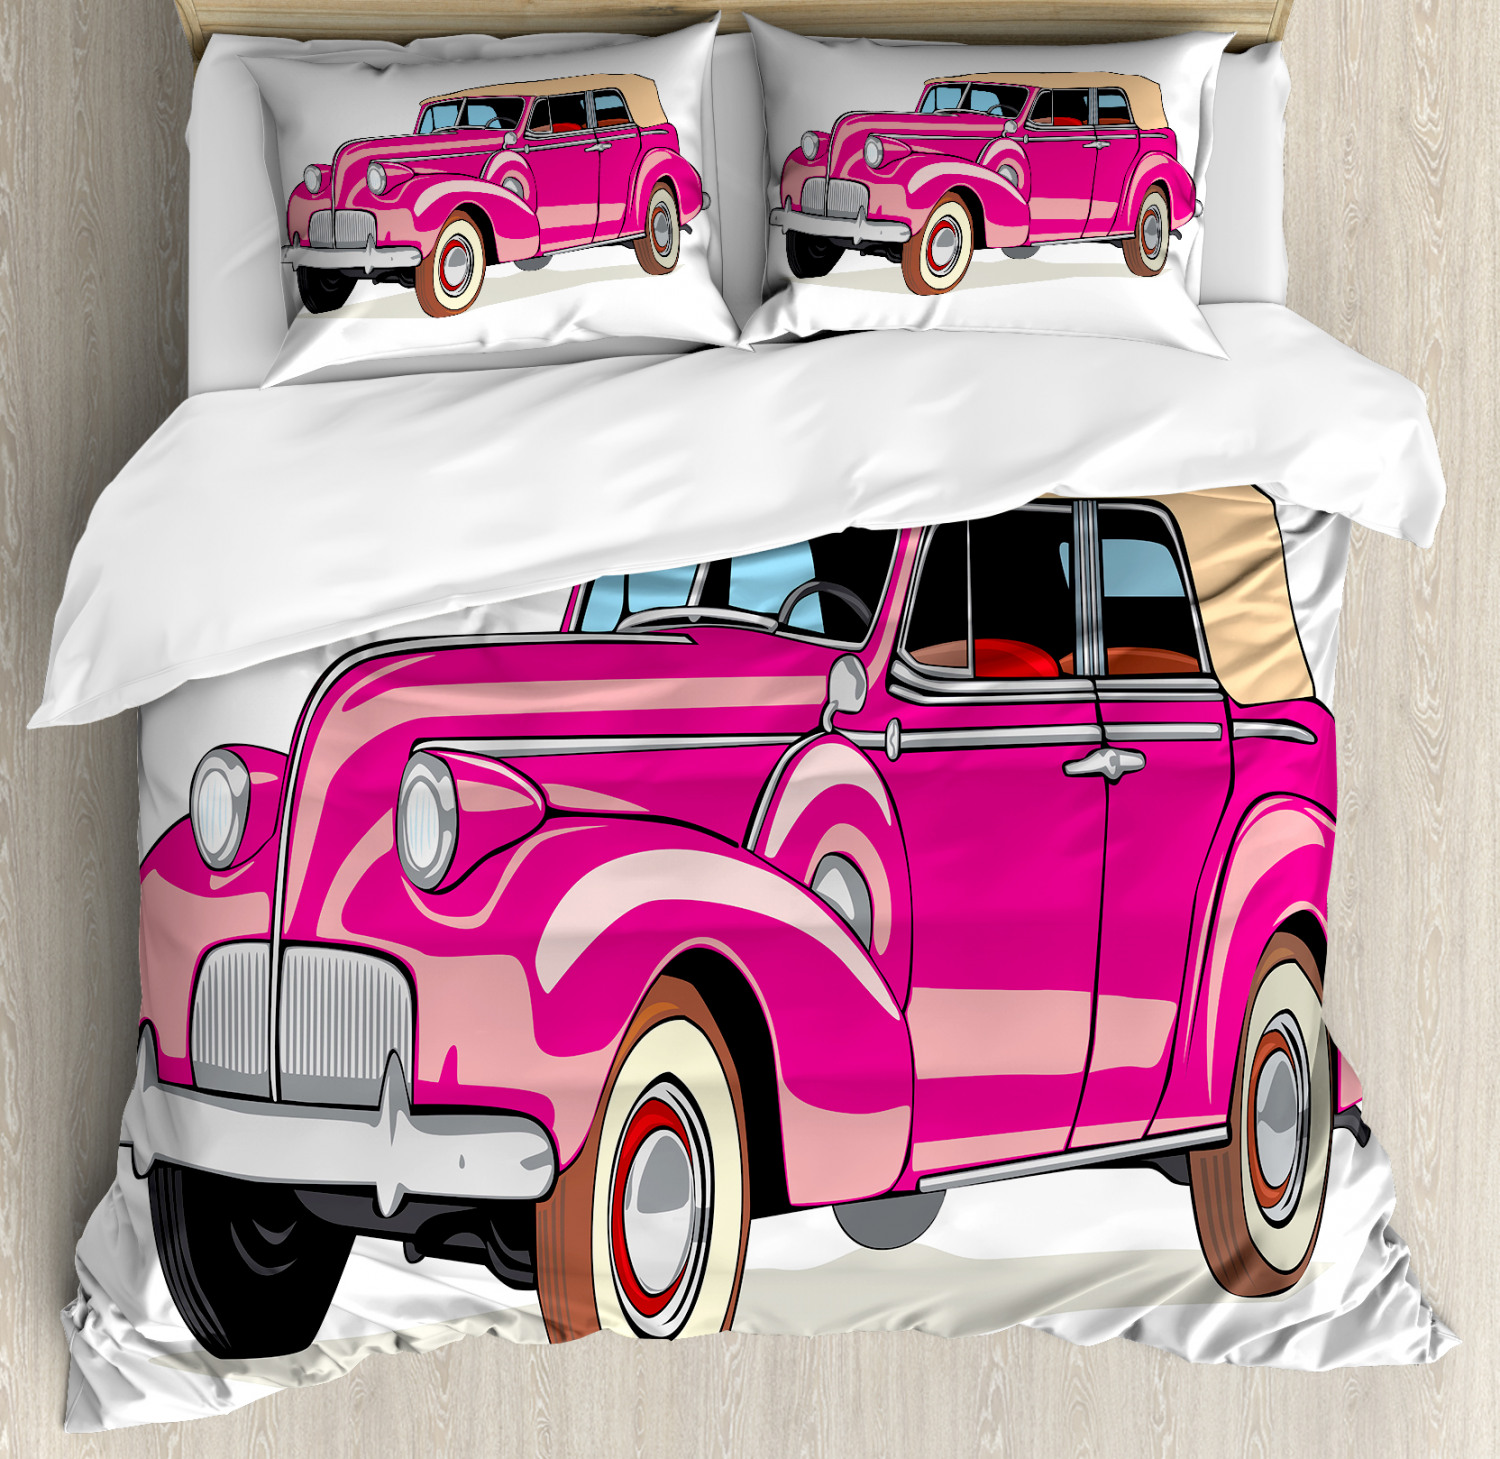 Colorful-Cars-Duvet-Cover-Set-Twin-Queen-King-Sizes-with-Pillow-Shams-Bedding miniature 34